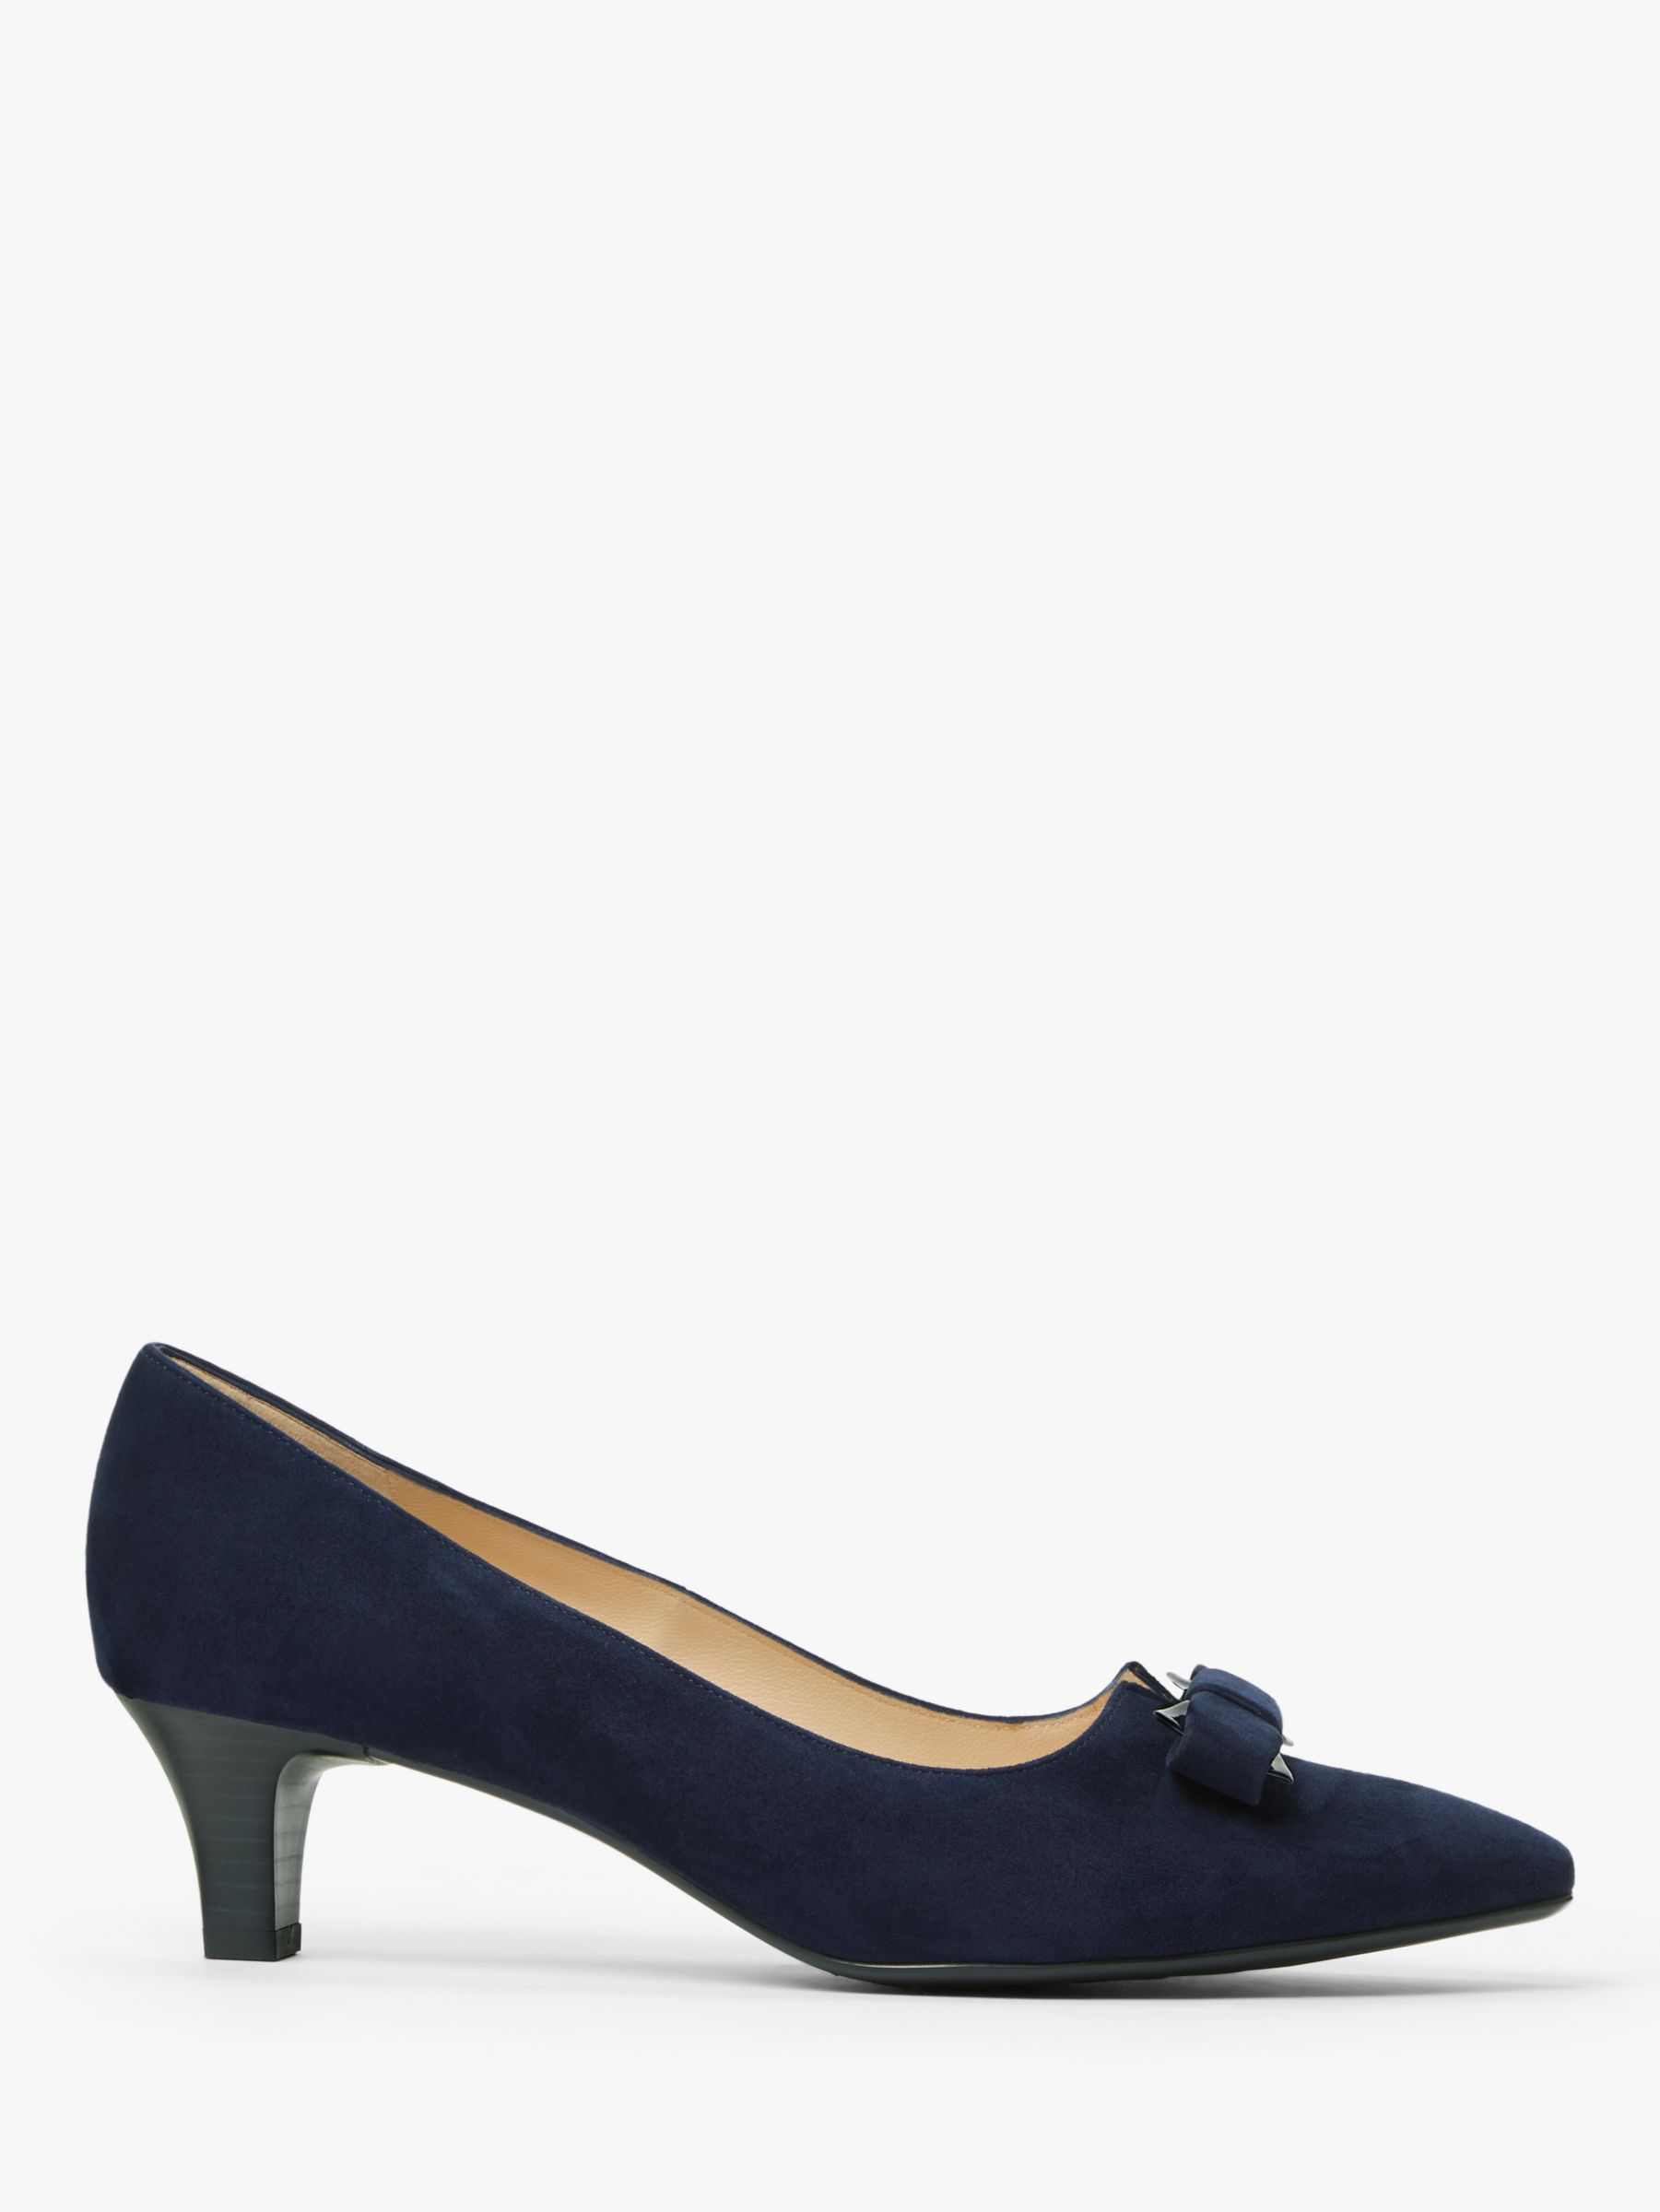 Peter Kaiser Peter Kaiser Saris Bow Detail Low Heel Court Shoes, Navy